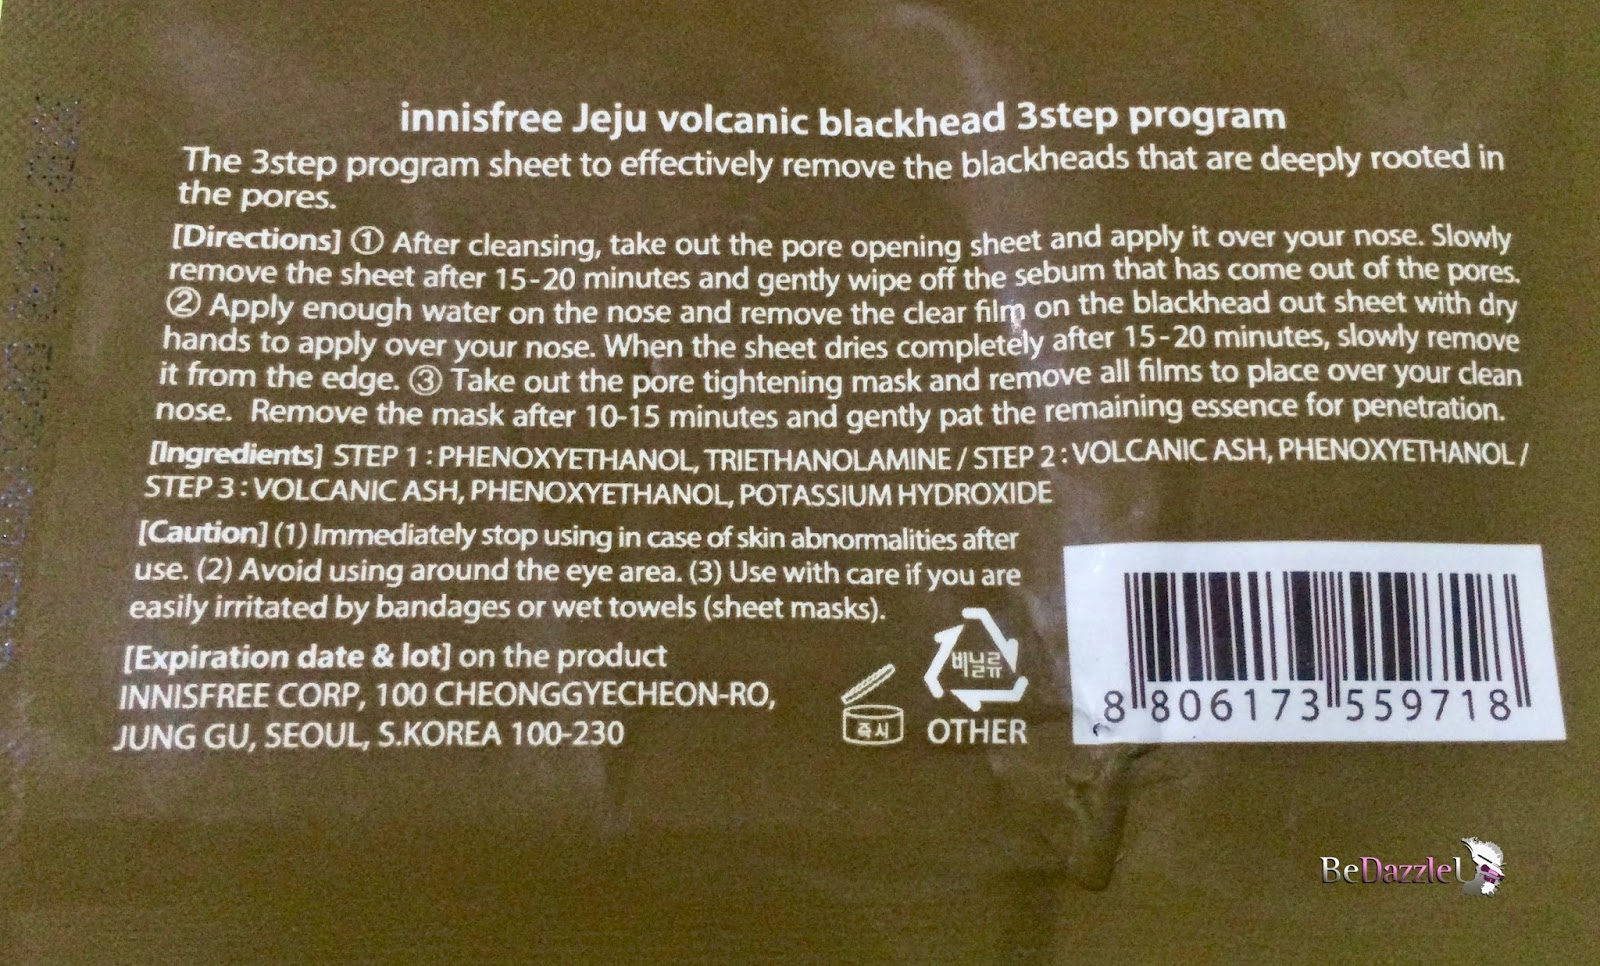 Innisfree jeju volcanic blackhead 3 step sheet review bedazzleu review sciox Choice Image